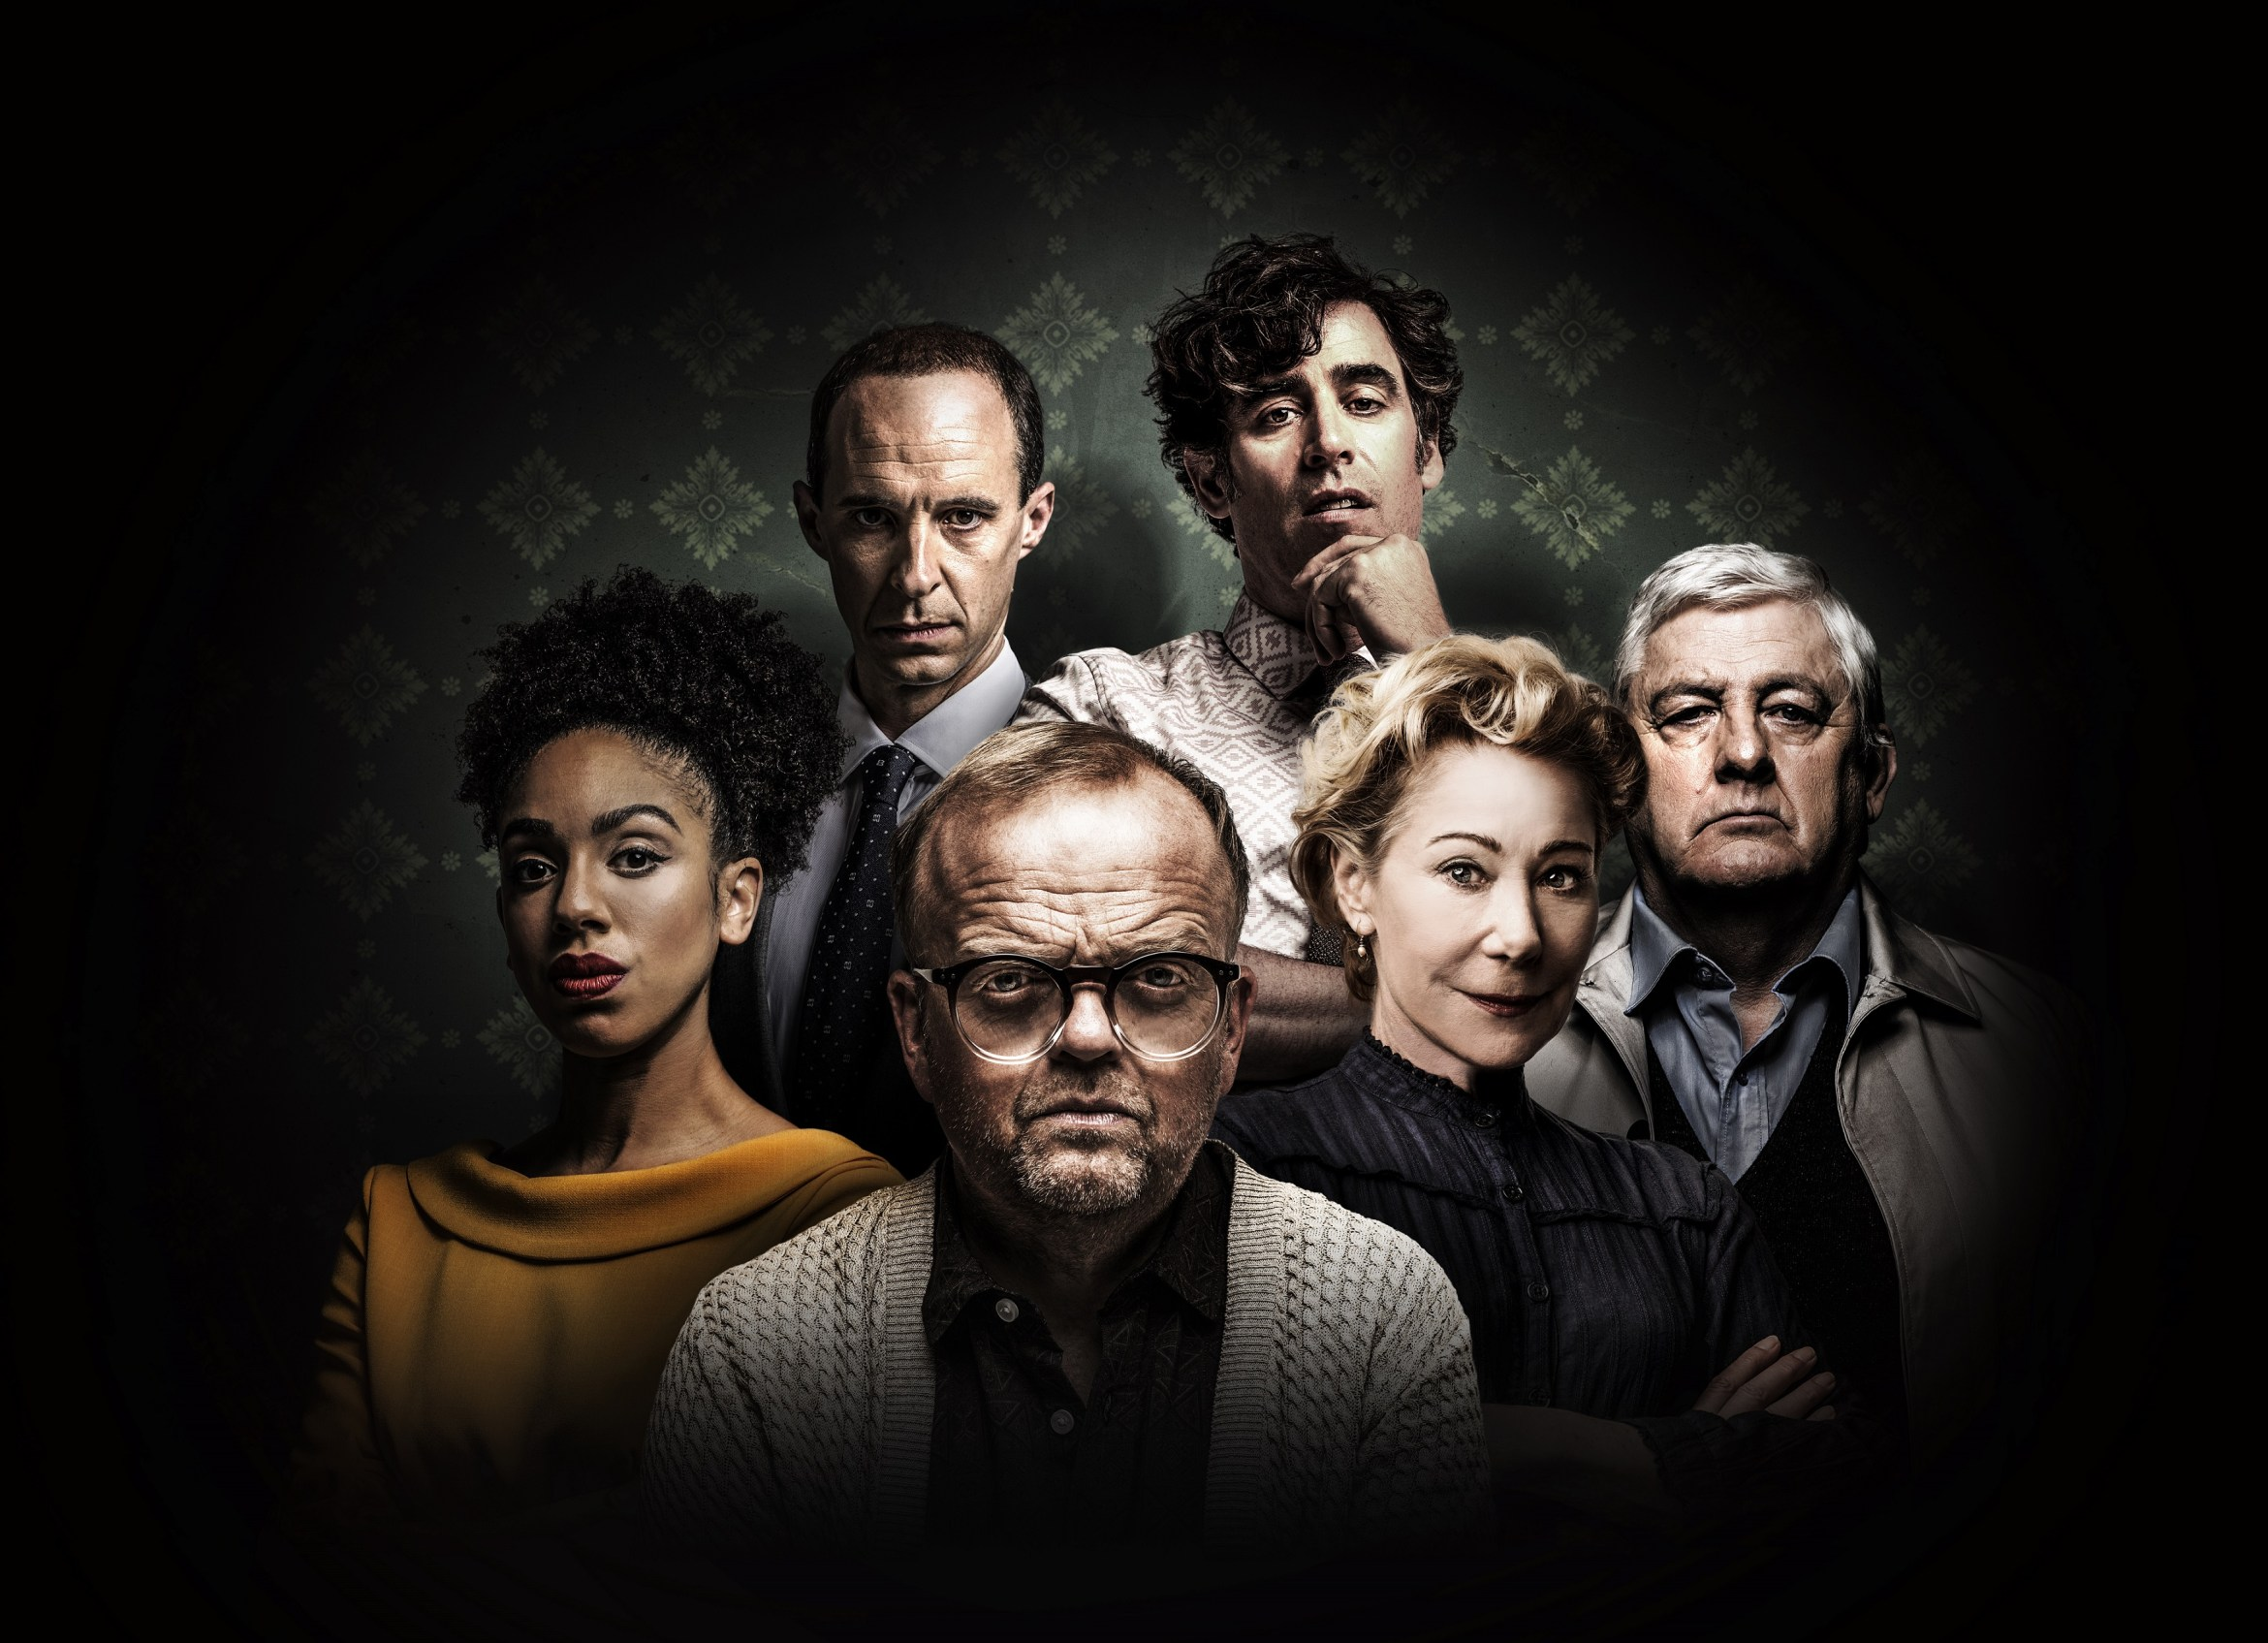 Harold-Pinters-The-Birthday-Party-will-play-at-the-Harold-Pinter-Theatre-from-9th-January-to-14th-April